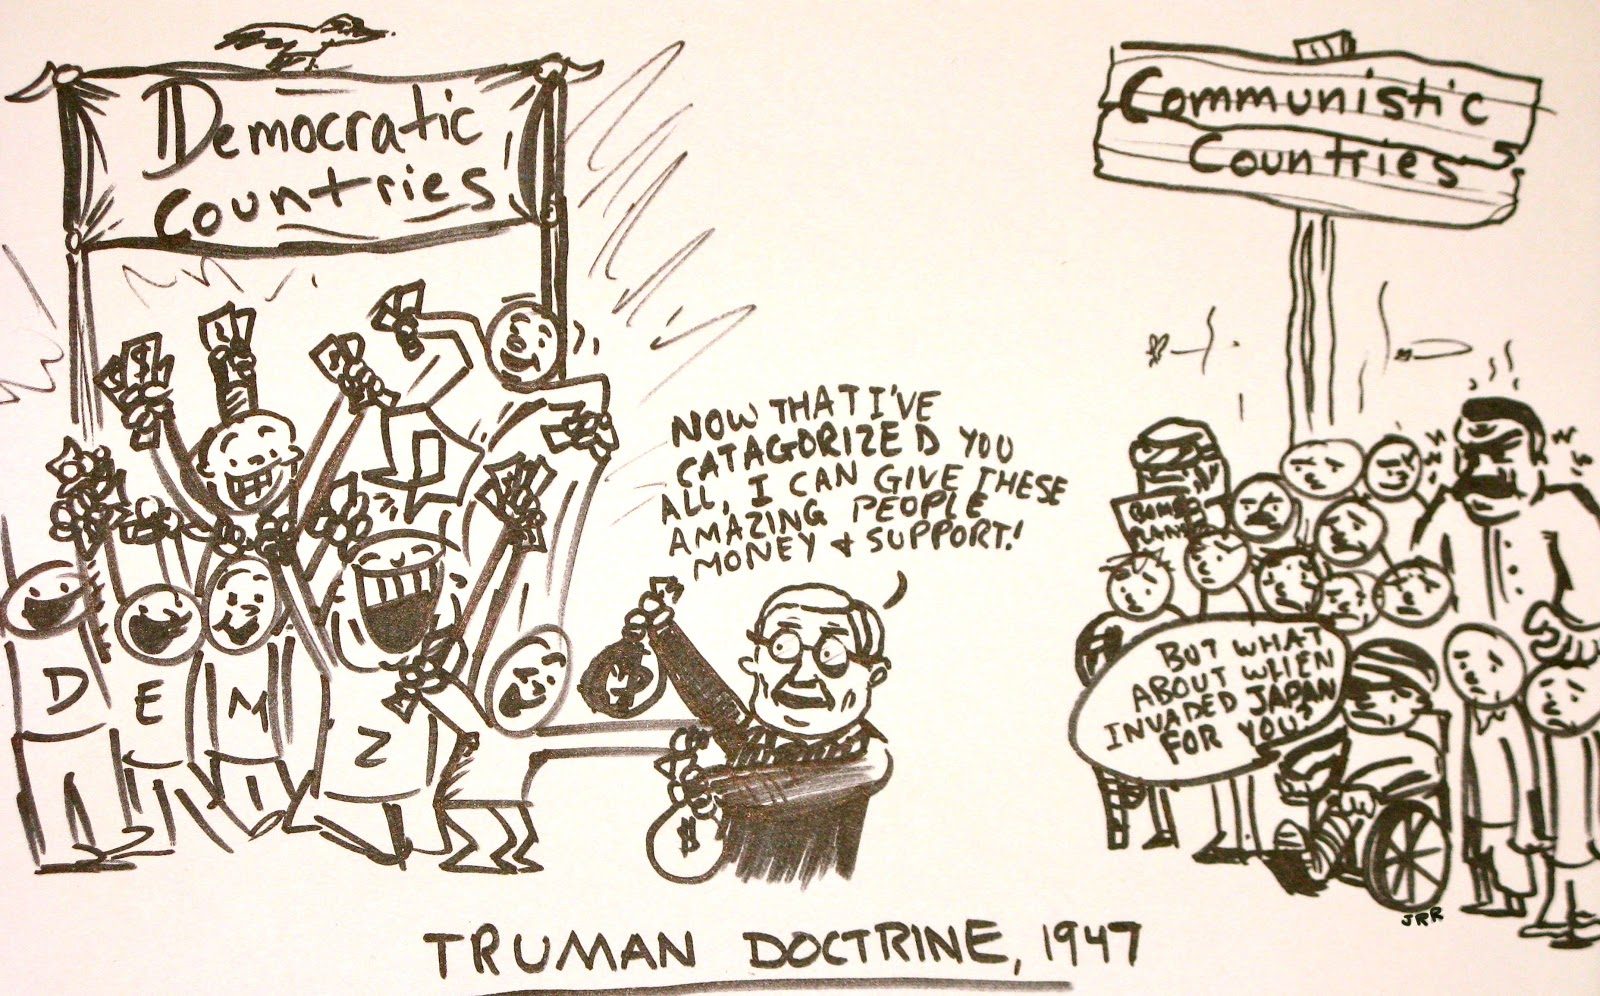 an analysis of the truman doctrine and the marshall plan caused the cold war Response to the cold war including containment, the marshall i—a feat that caused many americans to believe the the marshall plan, the truman doctrine.